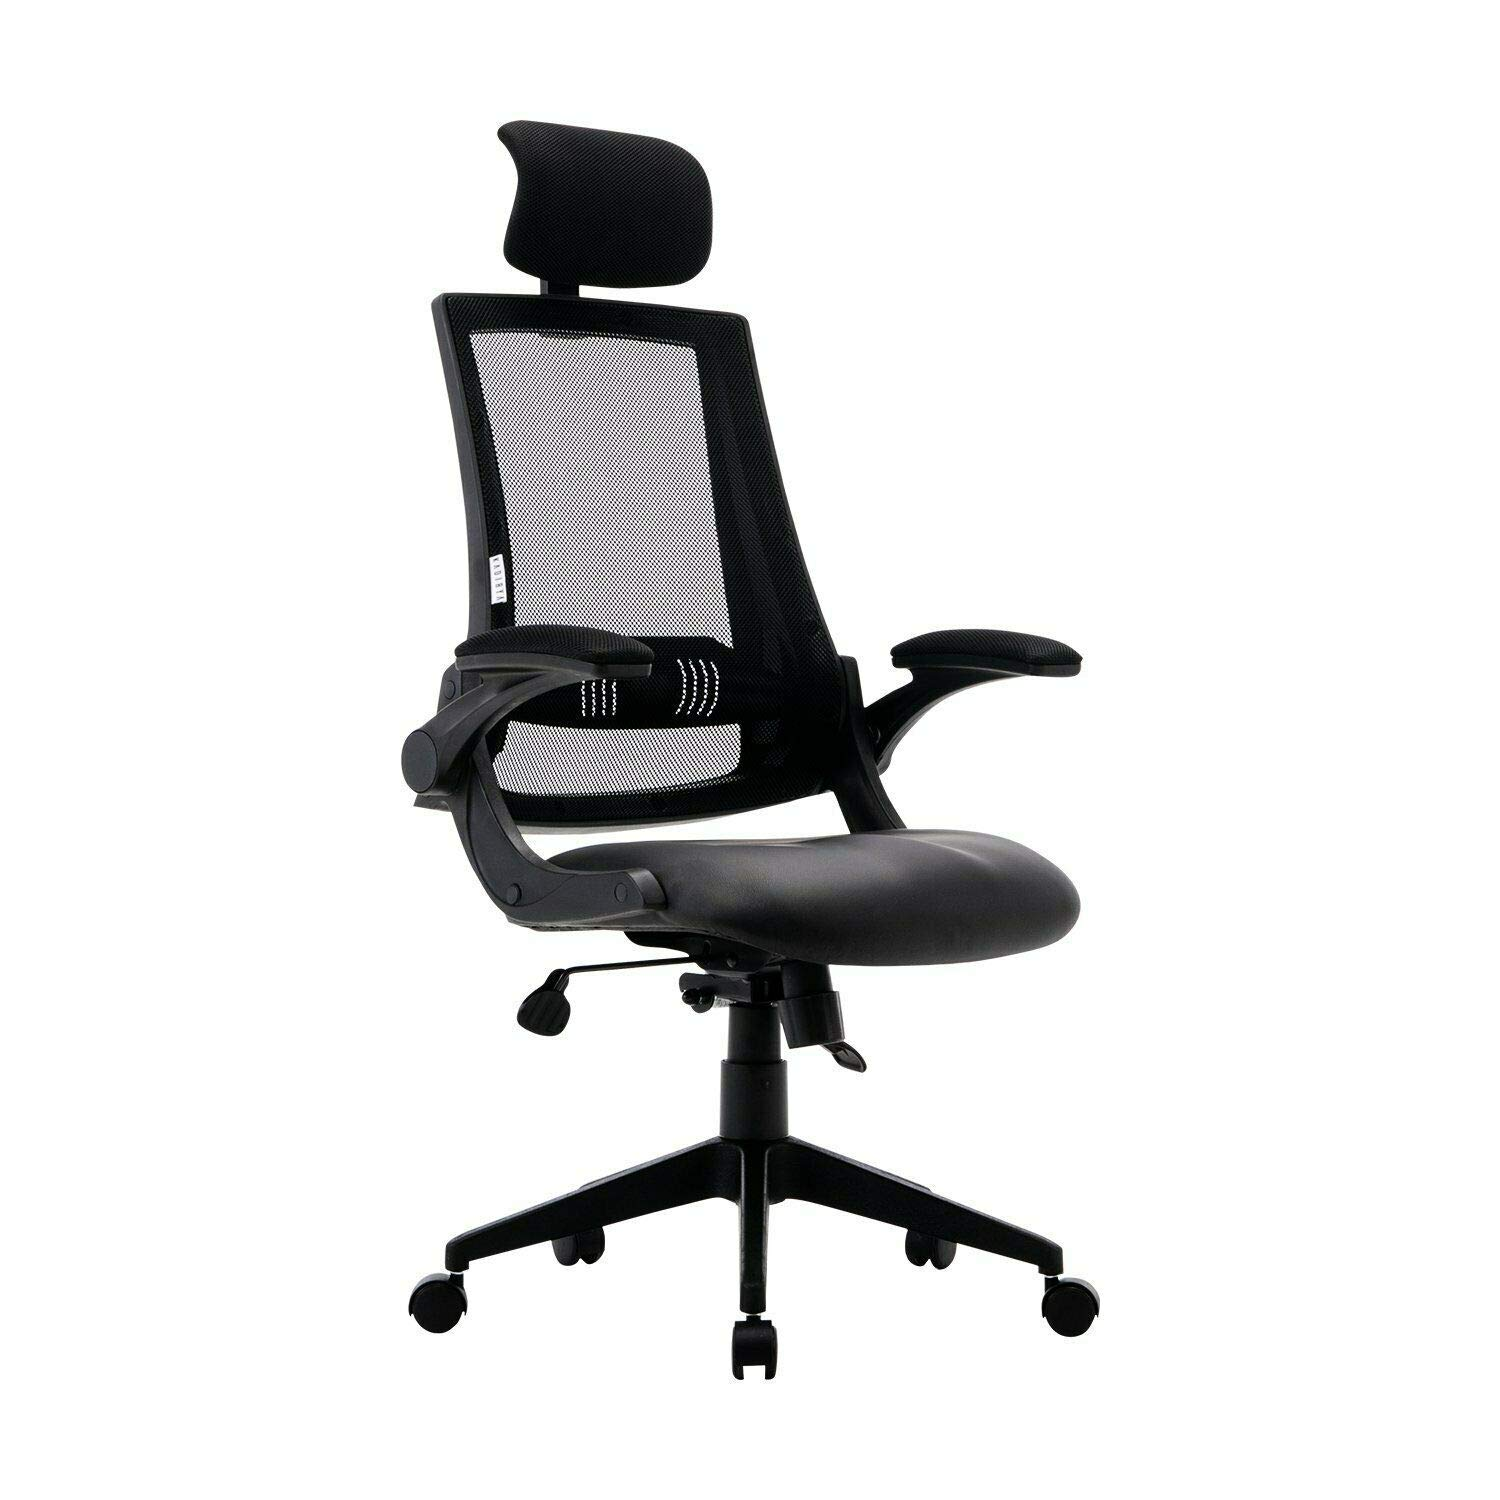 Mesh Ergonomic Office Chair Home Arm Desk Chair Tall Gaming Computer Chair for Women Men with